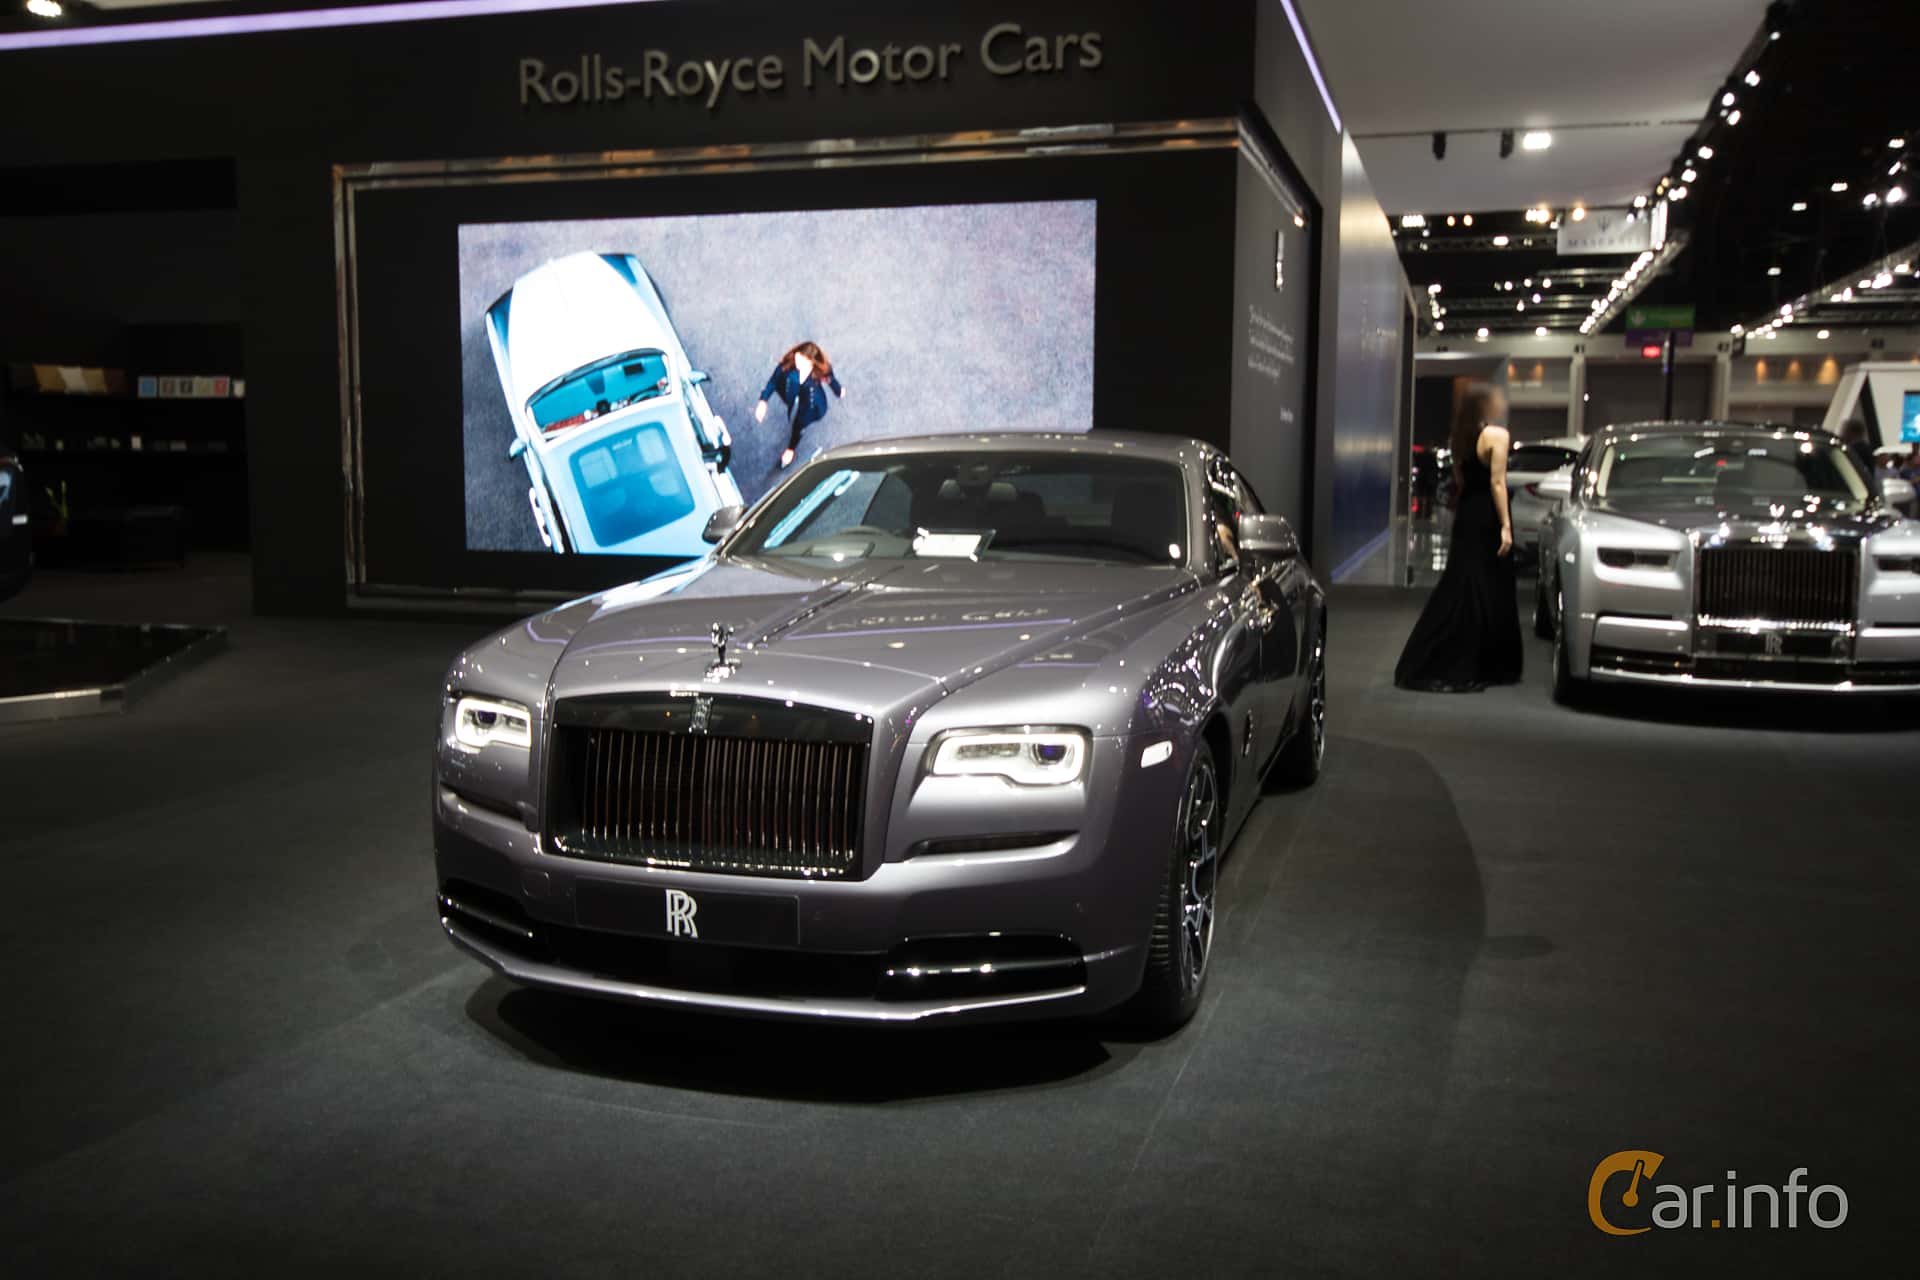 Rolls-Royce Wraith Coupé 6.6 V12 Automatic, 632hp, 2019 at Bangkok Motor Show 2019